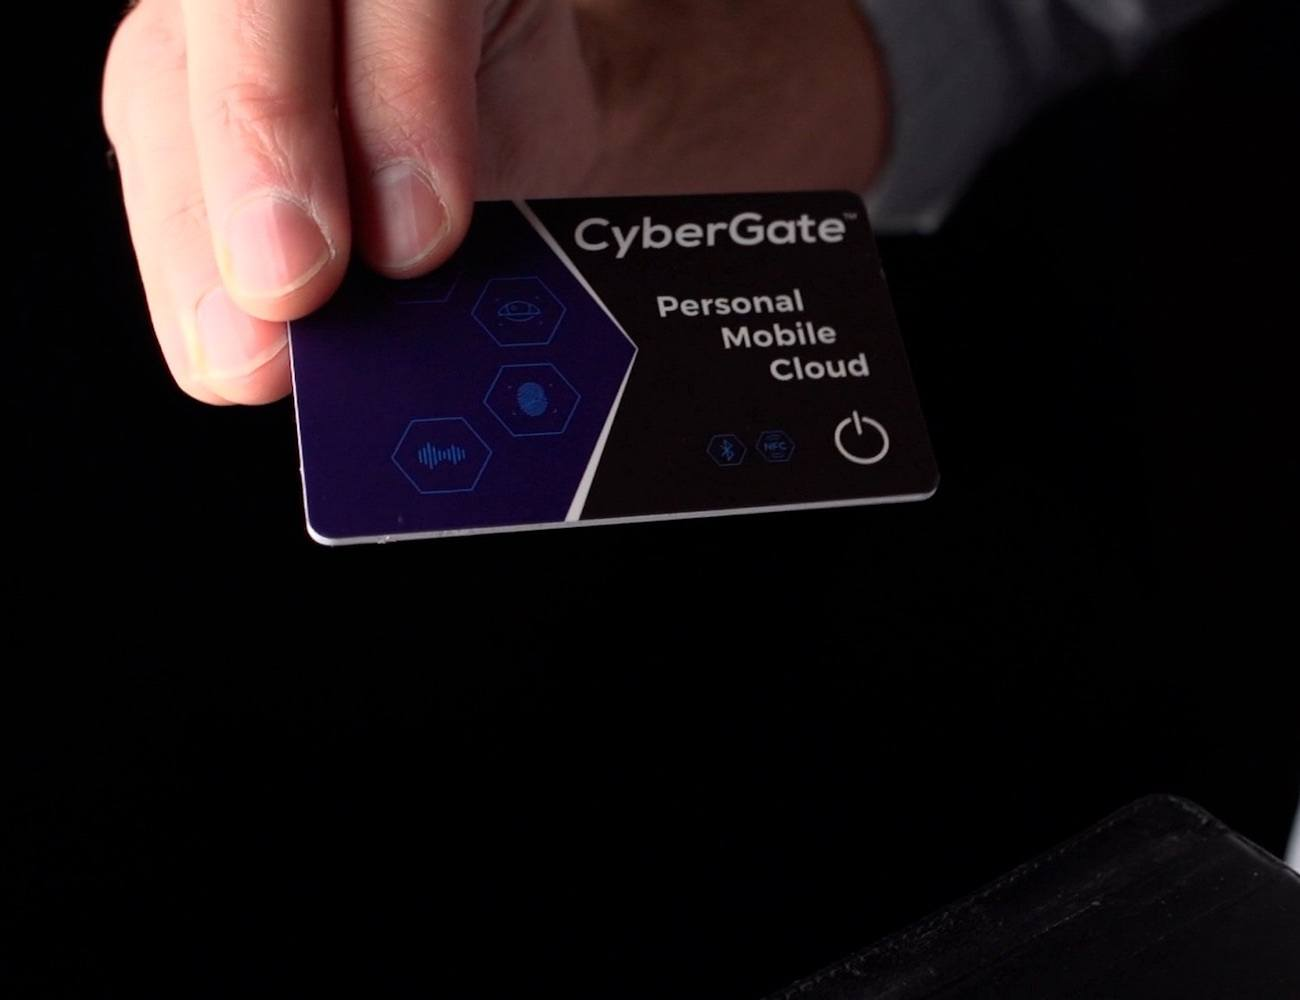 CyberGate Personal Mobile Cloud